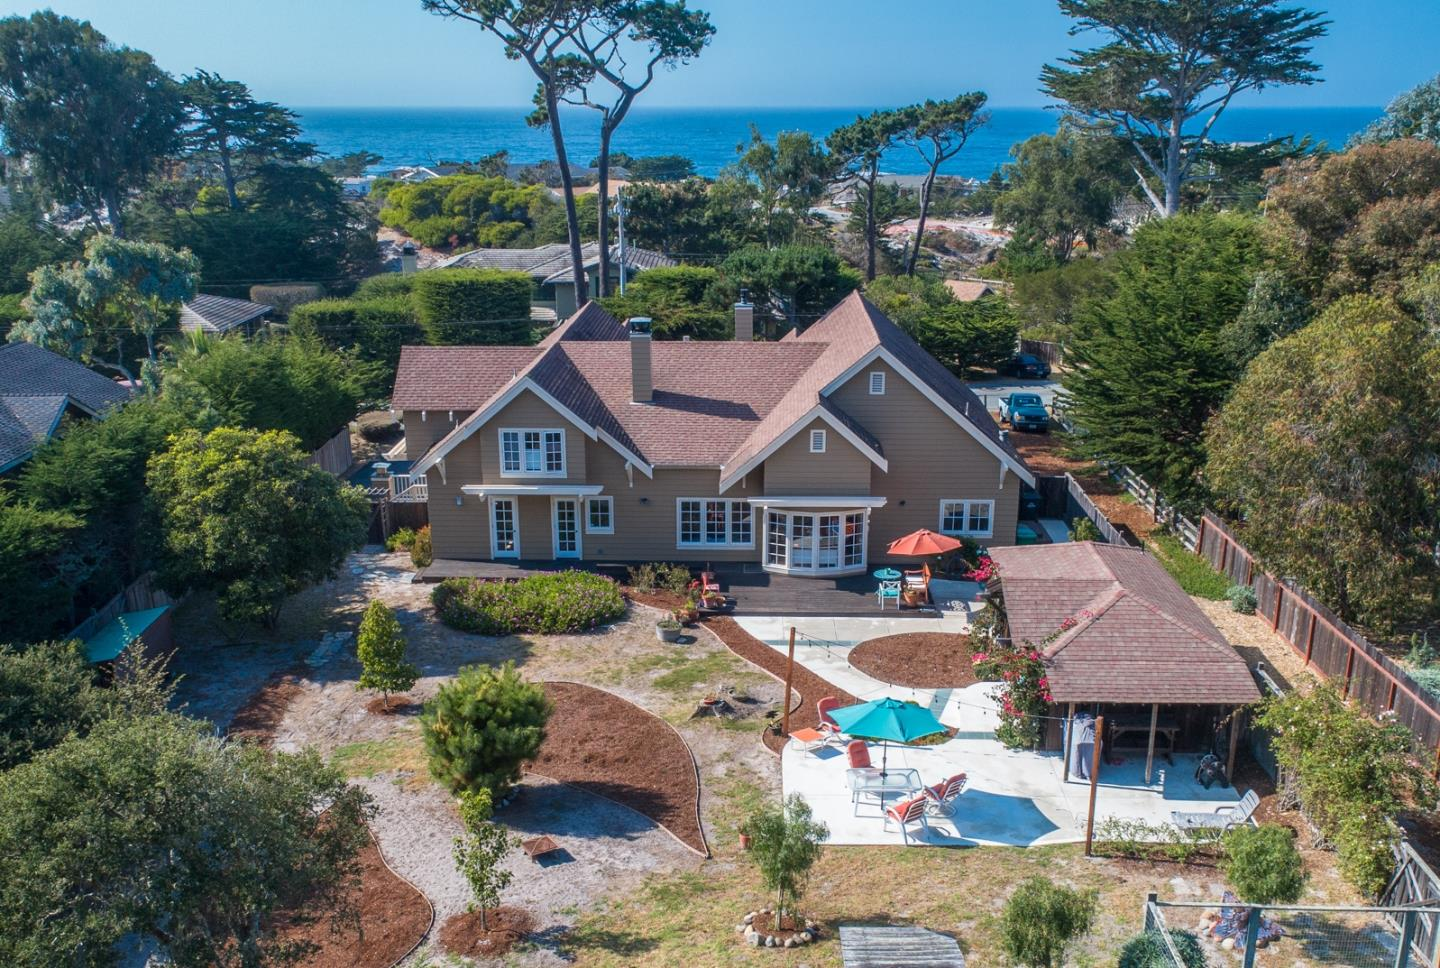 Property for sale at 415 Asilomar BLVD, Pacific Grove,  CA 93950